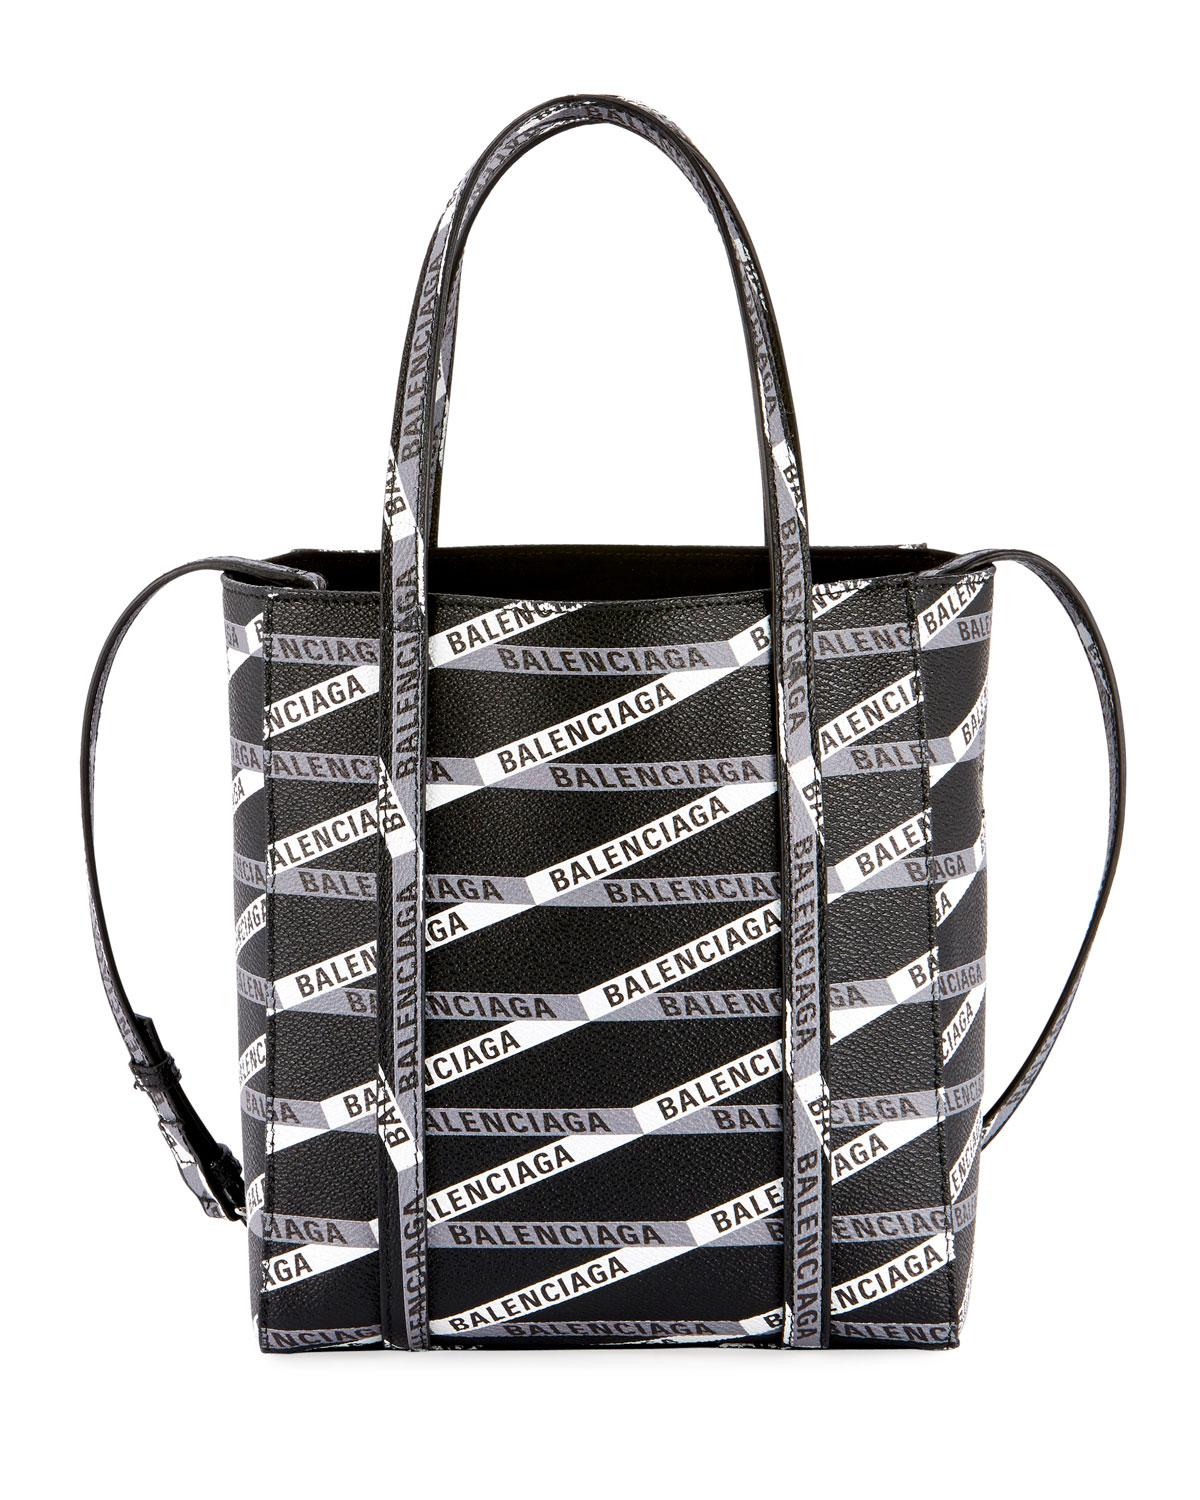 Balenciaga Every Day Xxs Aj Logo Stripe Leather Tote Bag In Black/gray